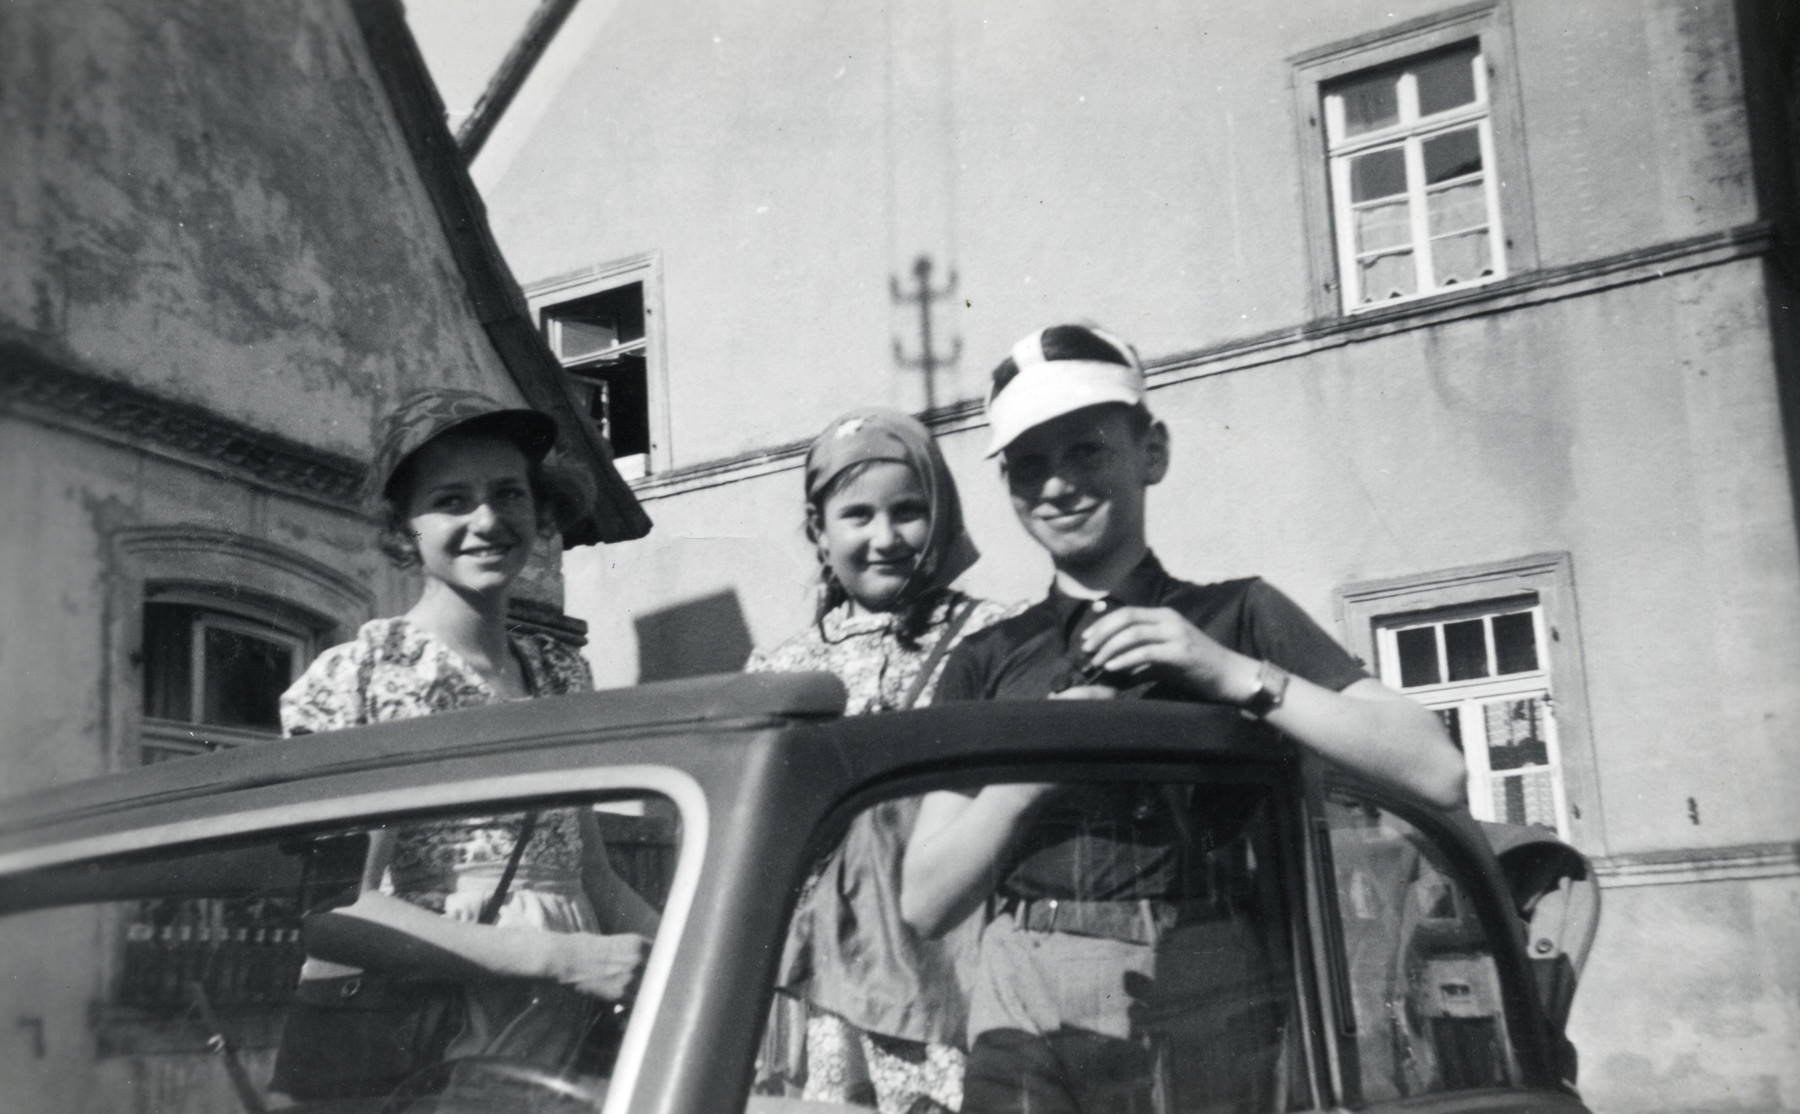 Three German-Jewish children peek out of the open roof of an automobile.  Pictured are Erika and Werner Loebl, and an unidentified younger child standing in the center.